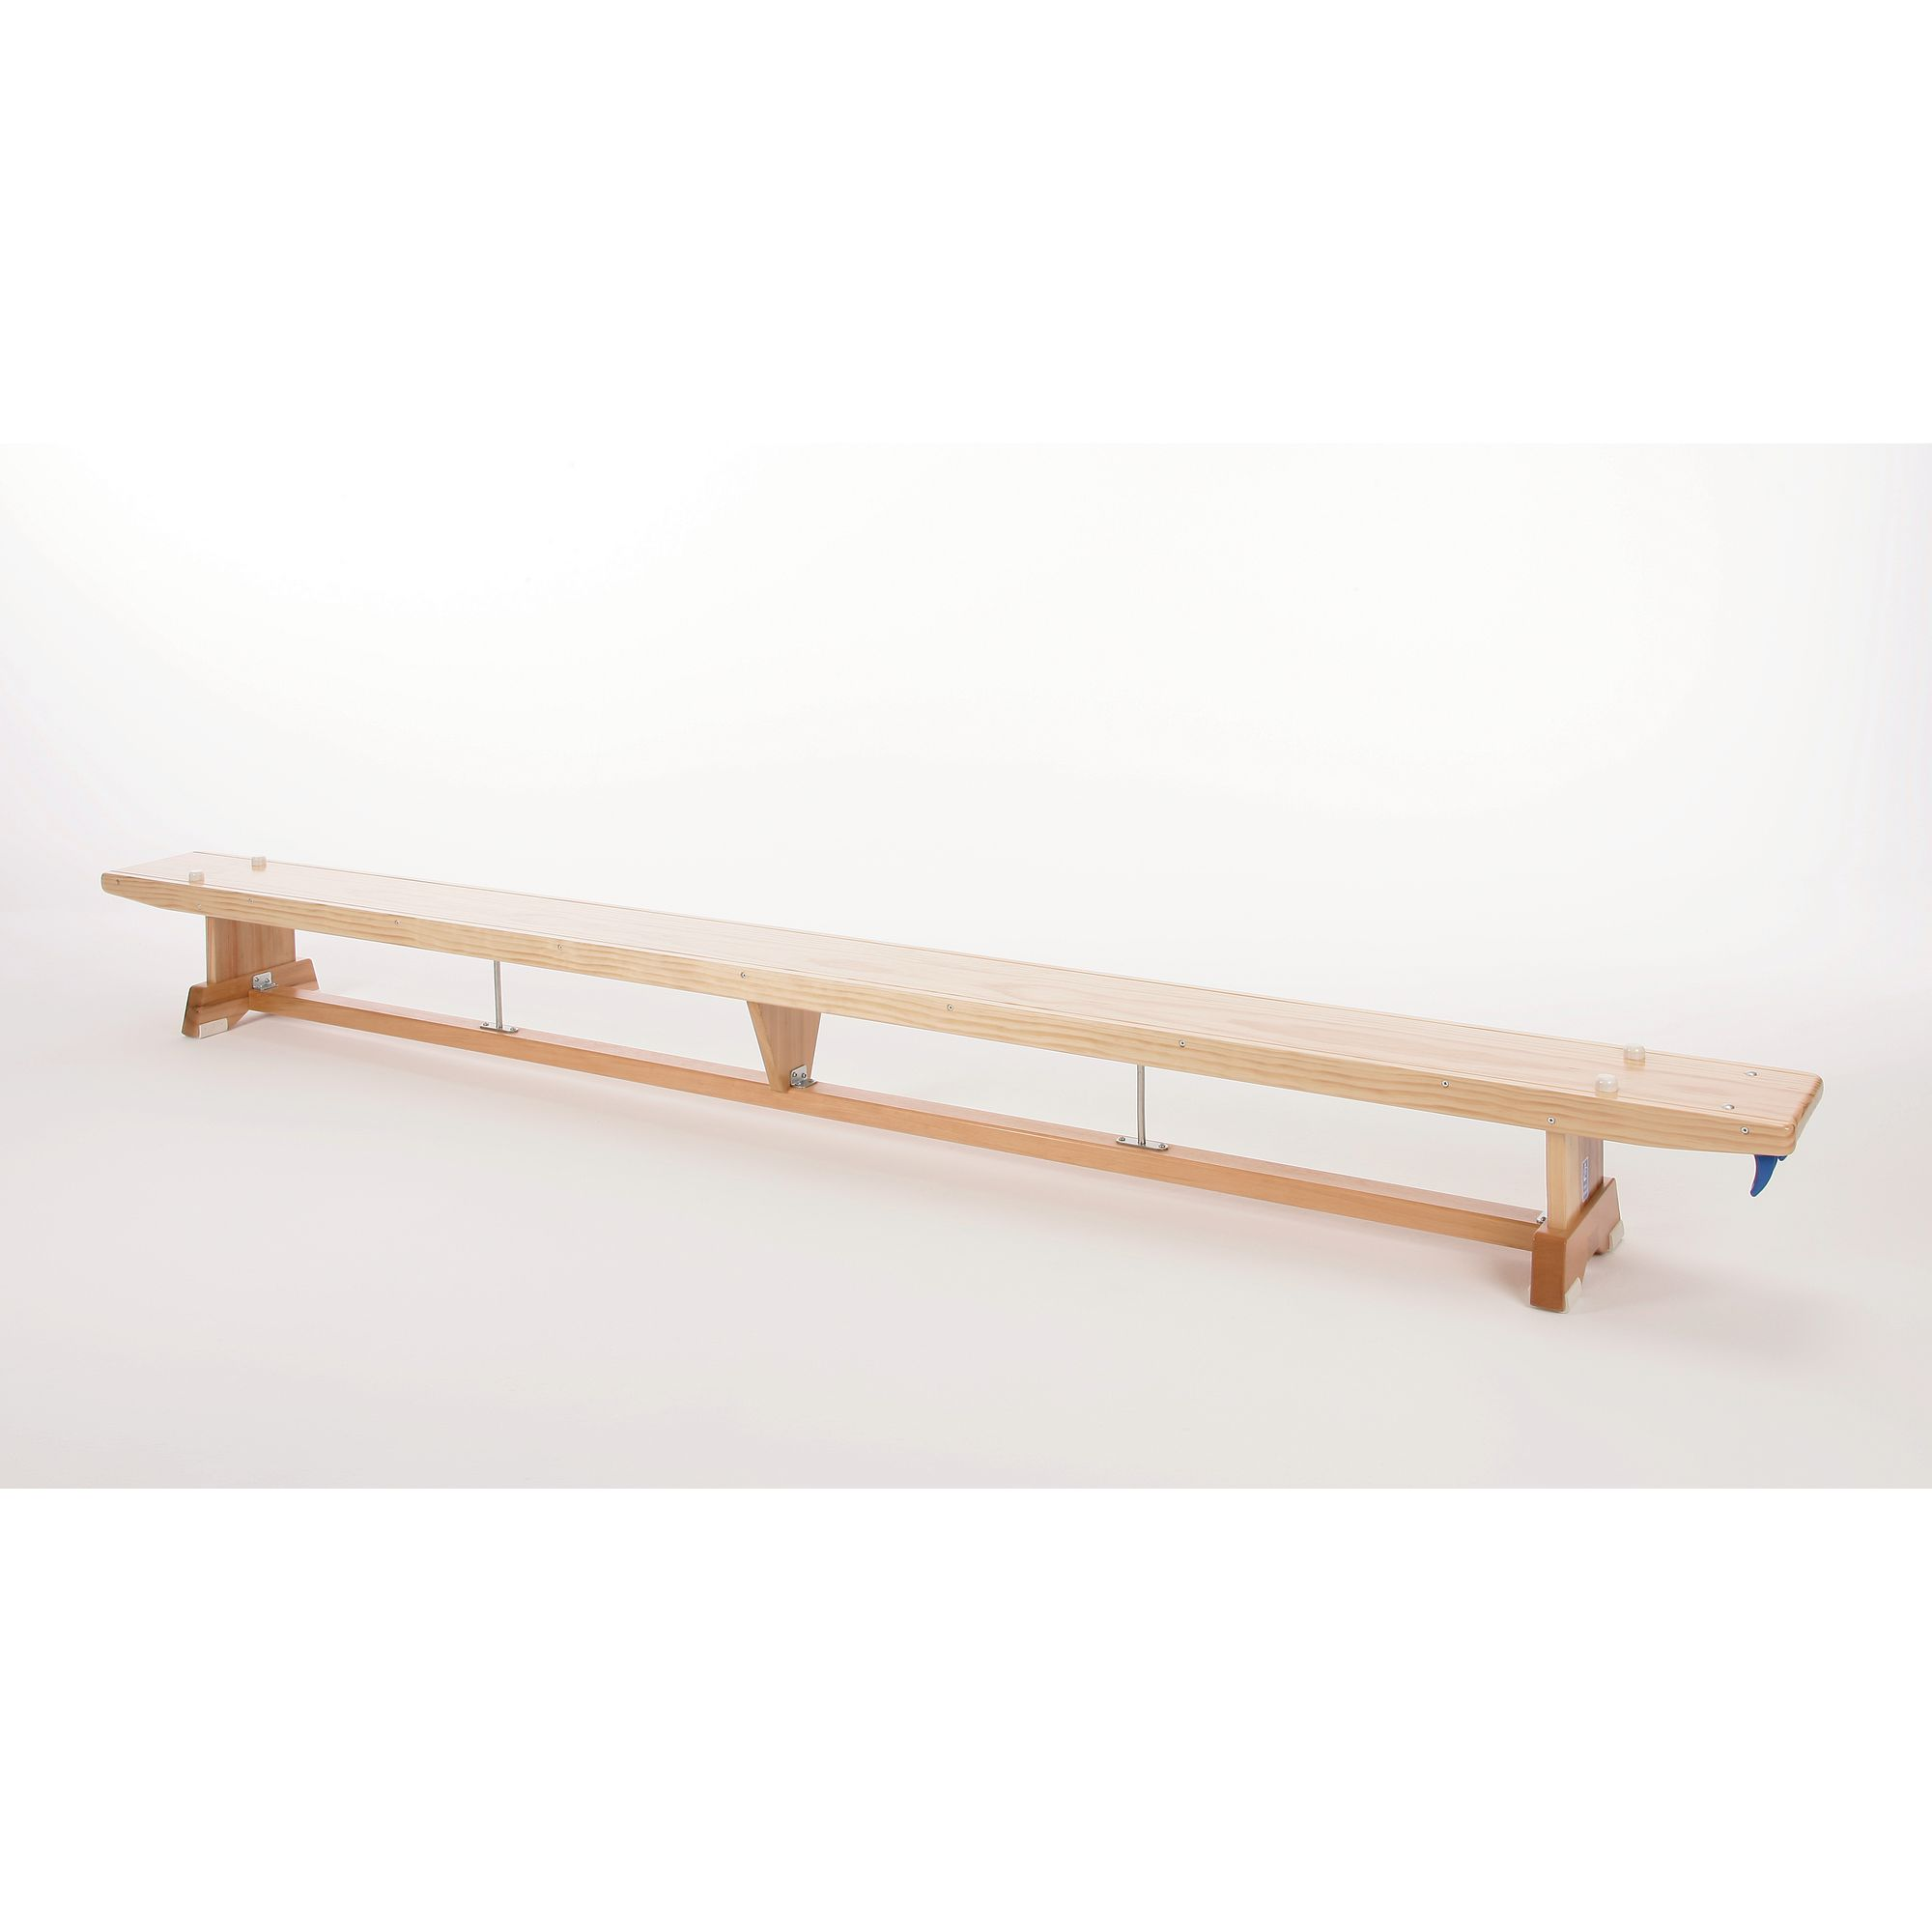 Balance Benches 1.83m Hooks both Ends